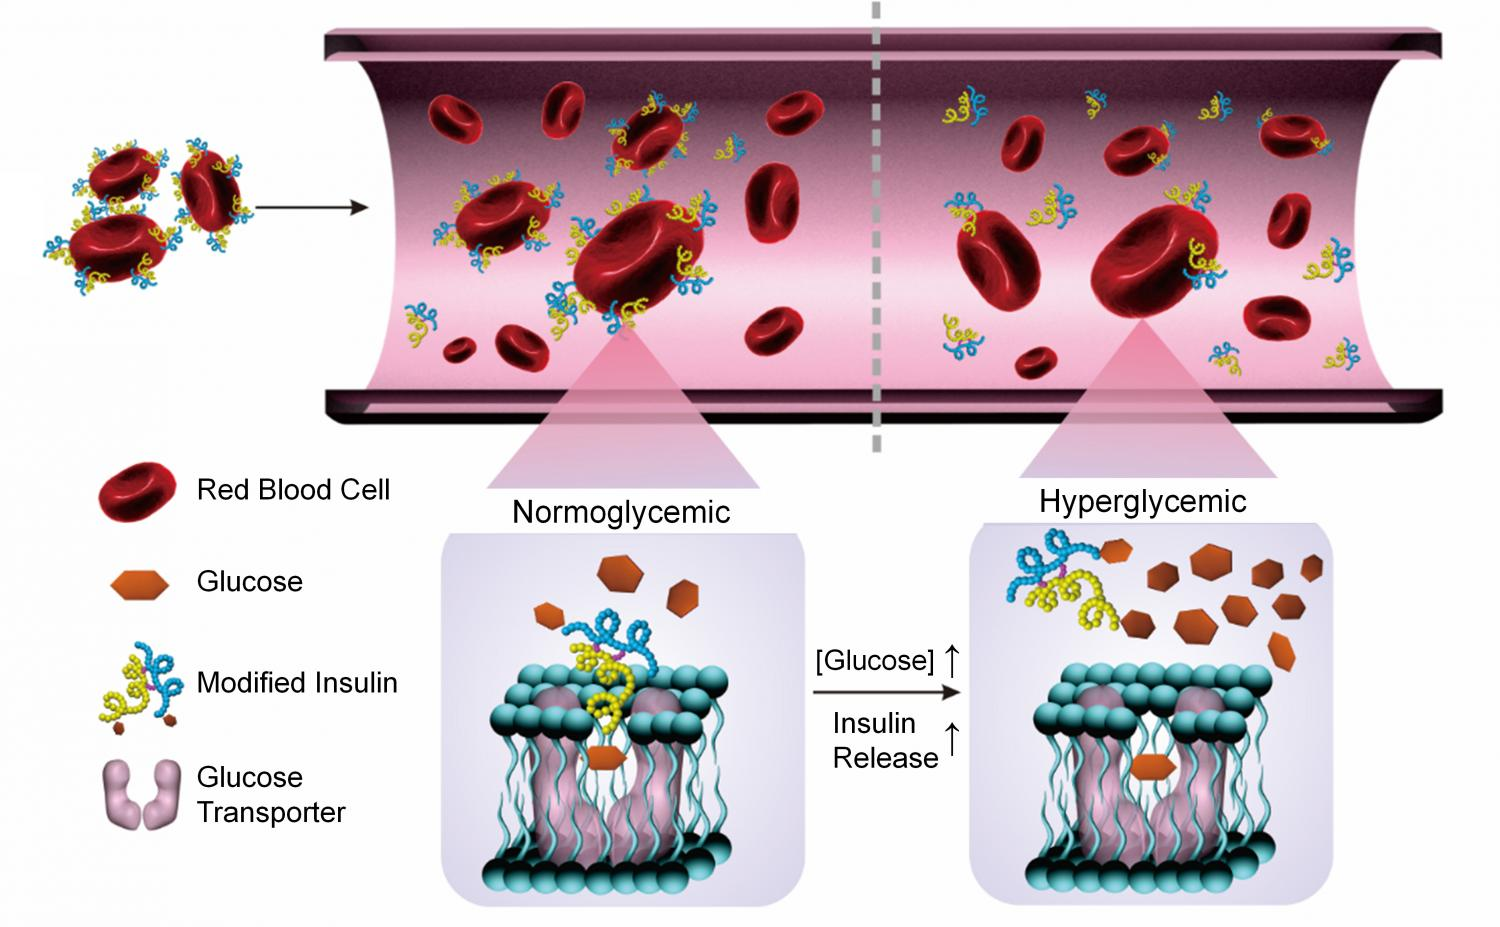 Cell clipart red blood cell. Researchers use modified insulin